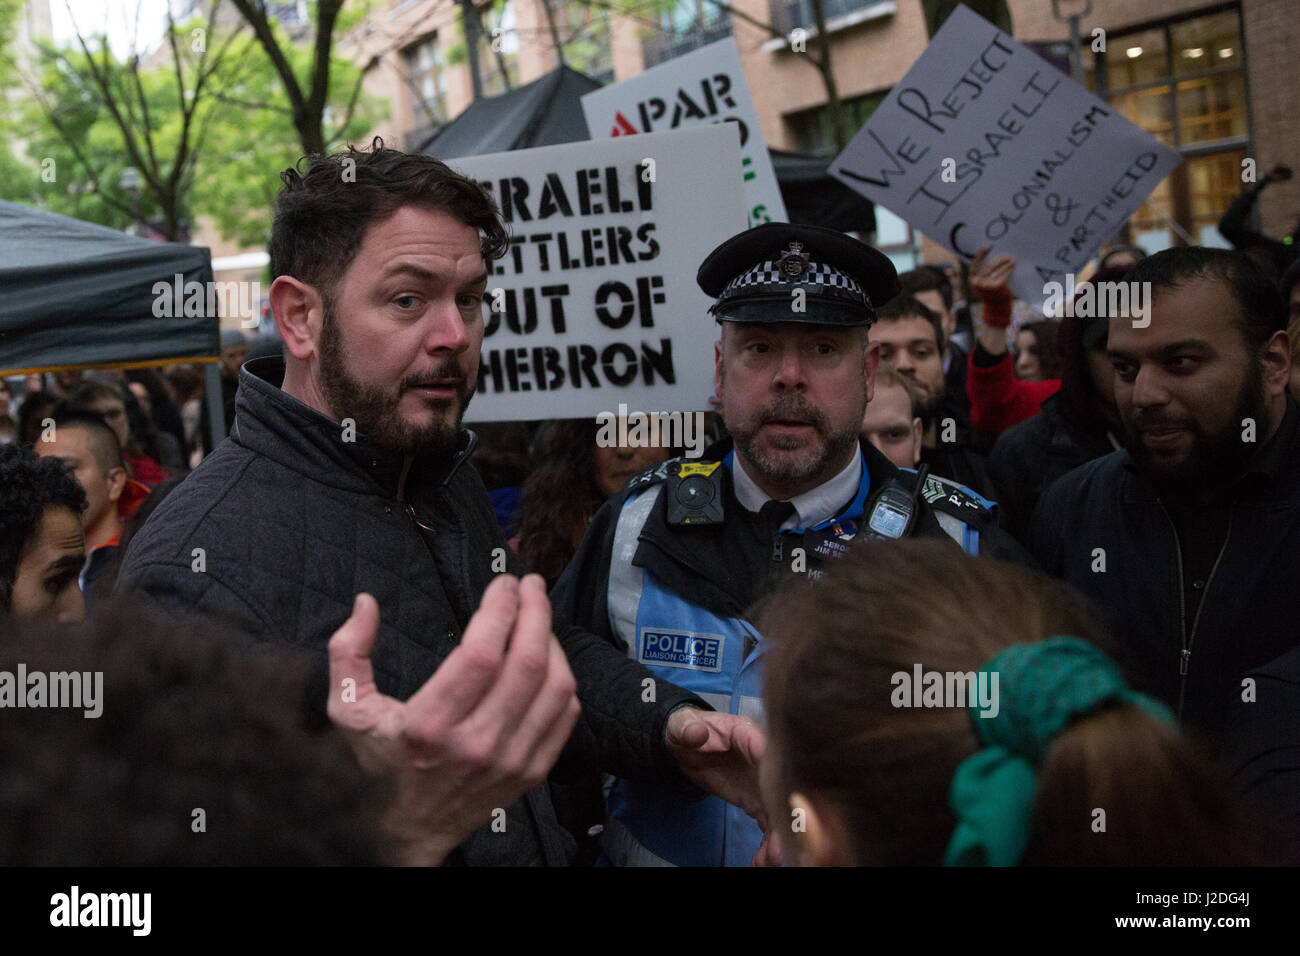 London, UK. 27th April, 2017. A counter-demonstrator remonstrates with police and student representatives after - Stock Image